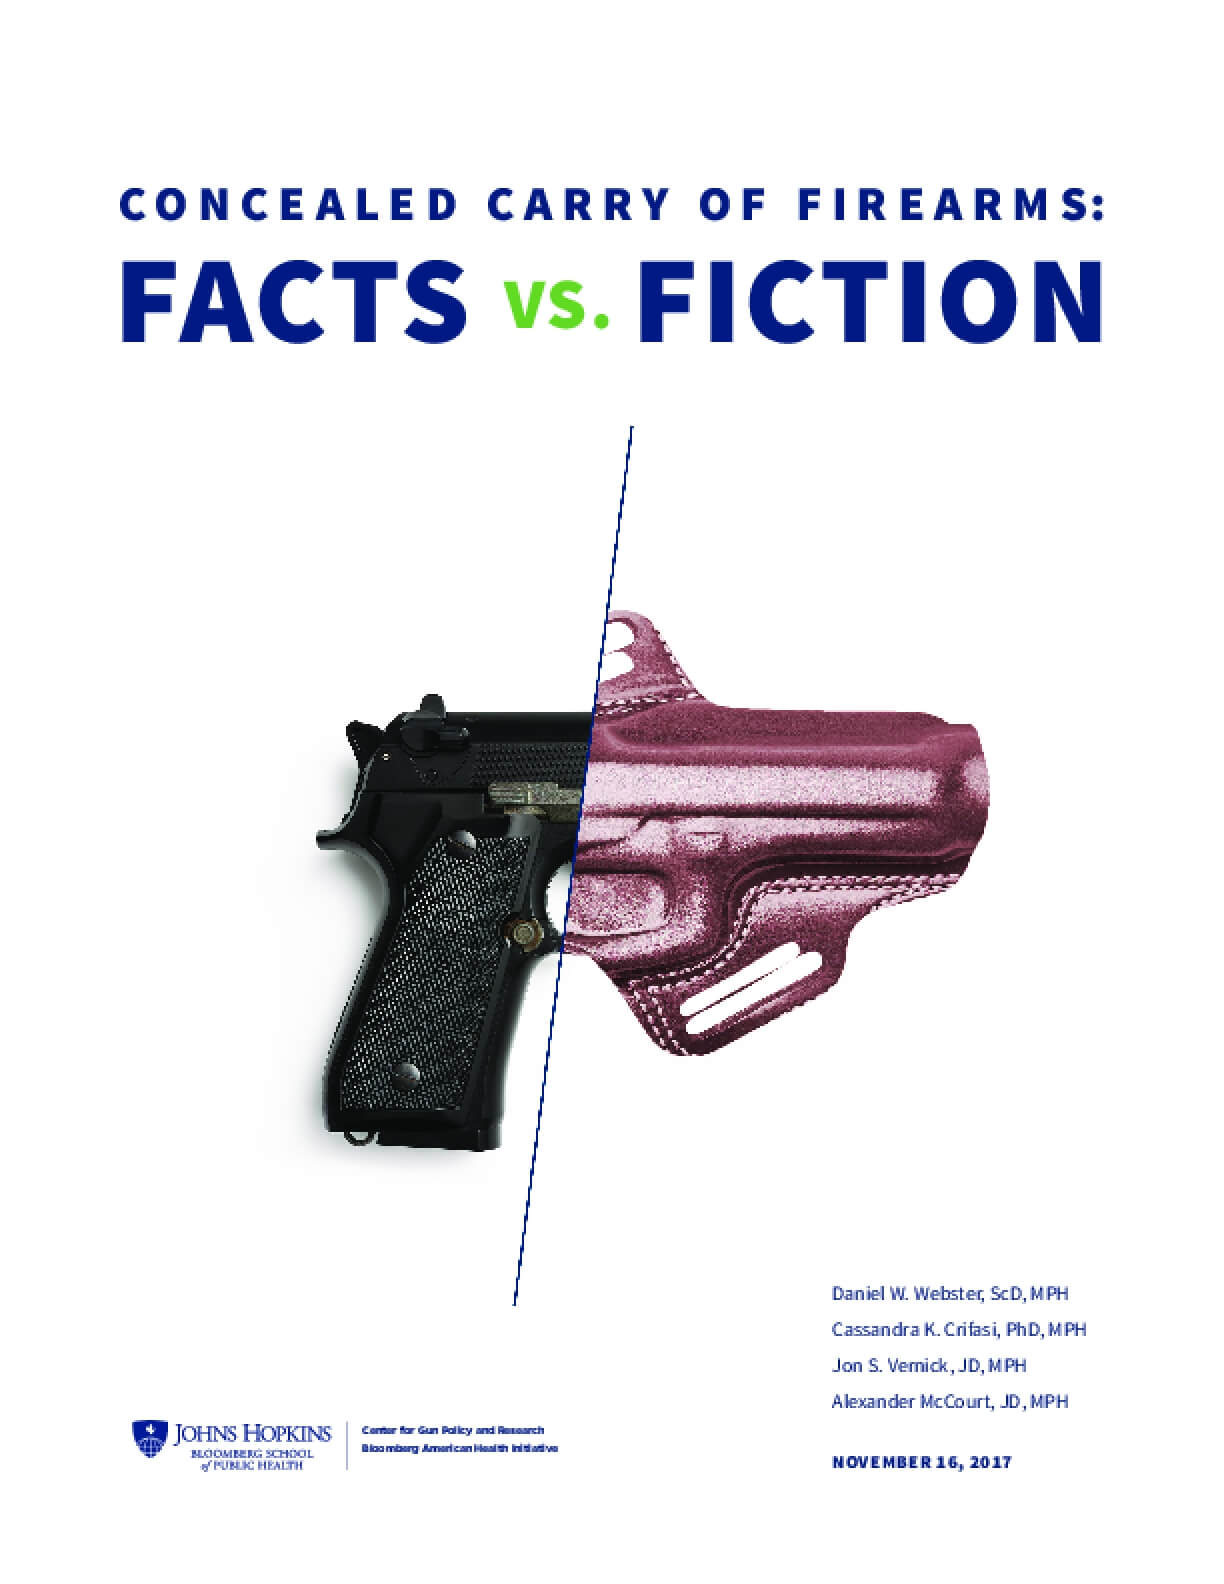 Concealed Carry of Firearms: Facts vs. Fiction